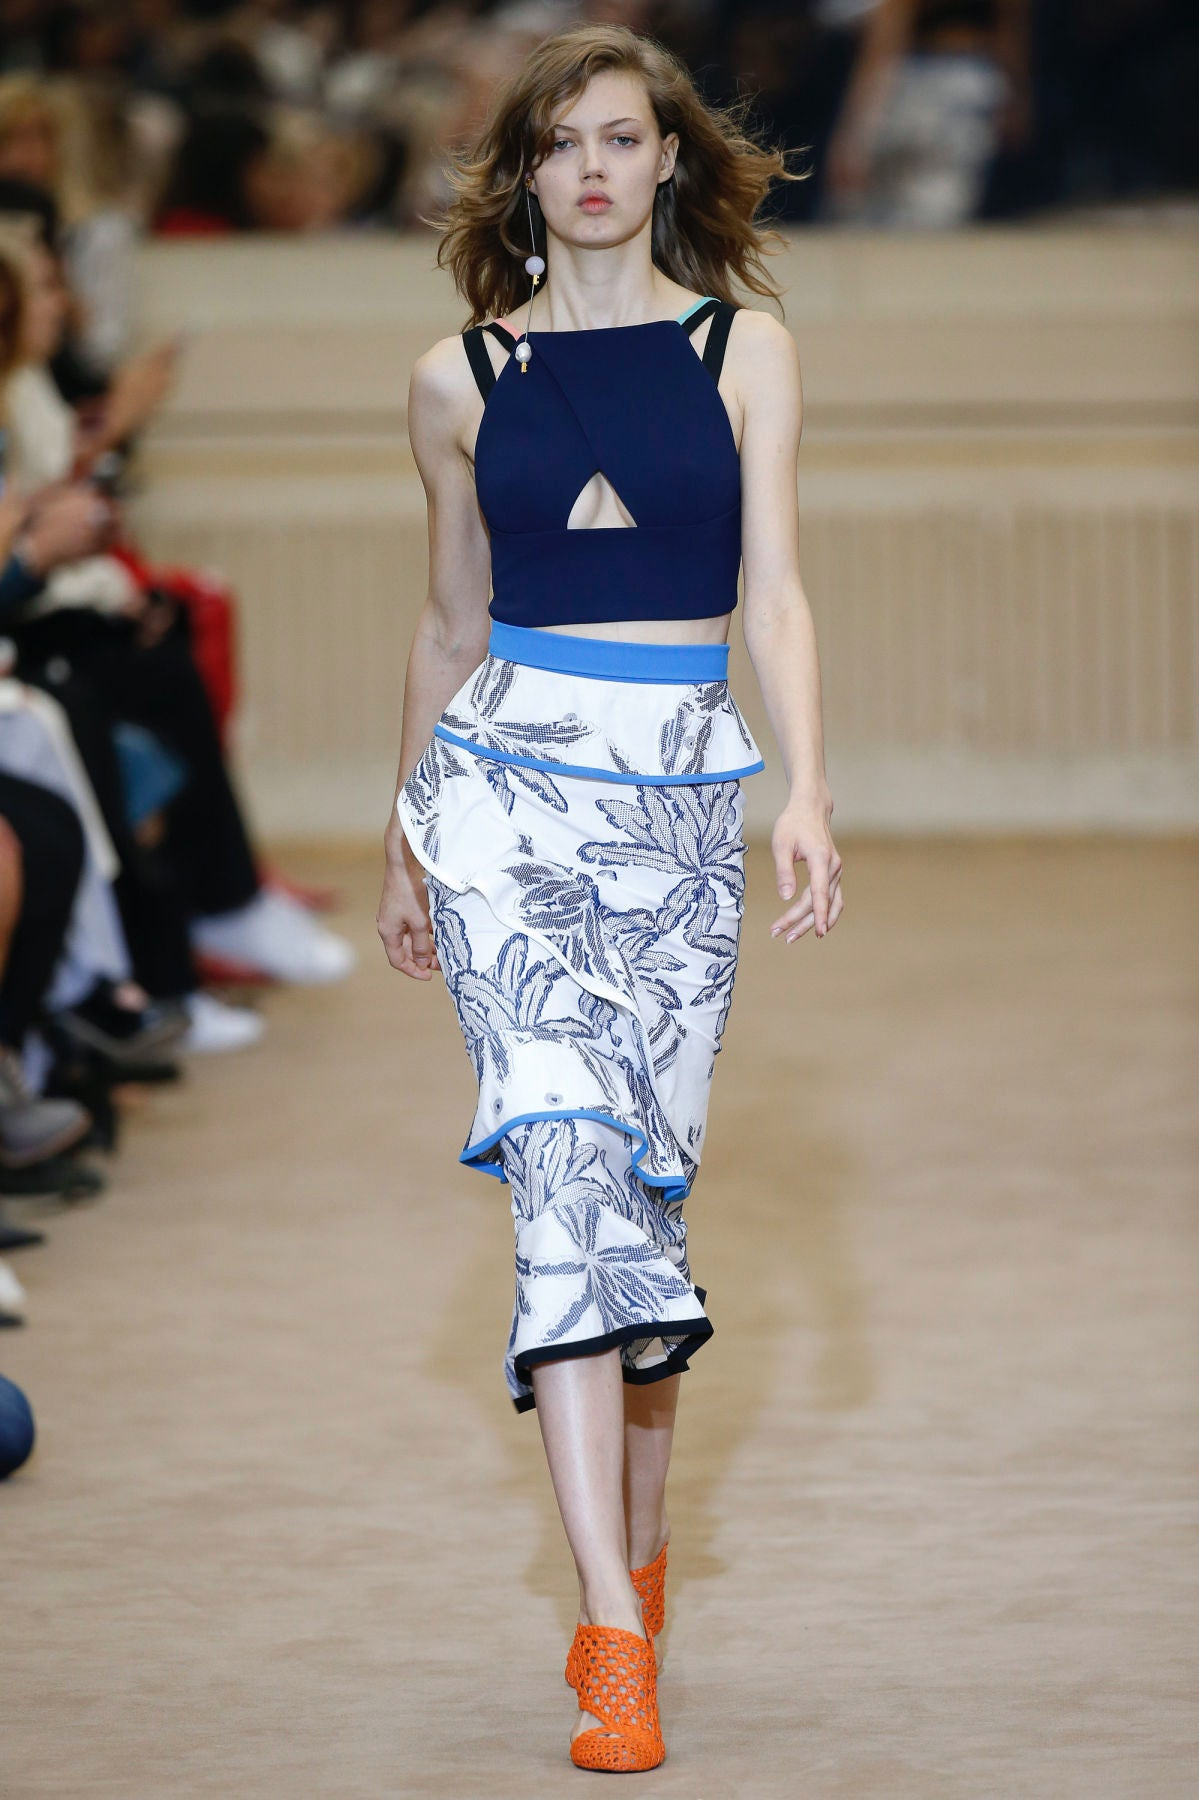 Roland Mouret Celebrates His 10th Anniversary With Some Time Travel